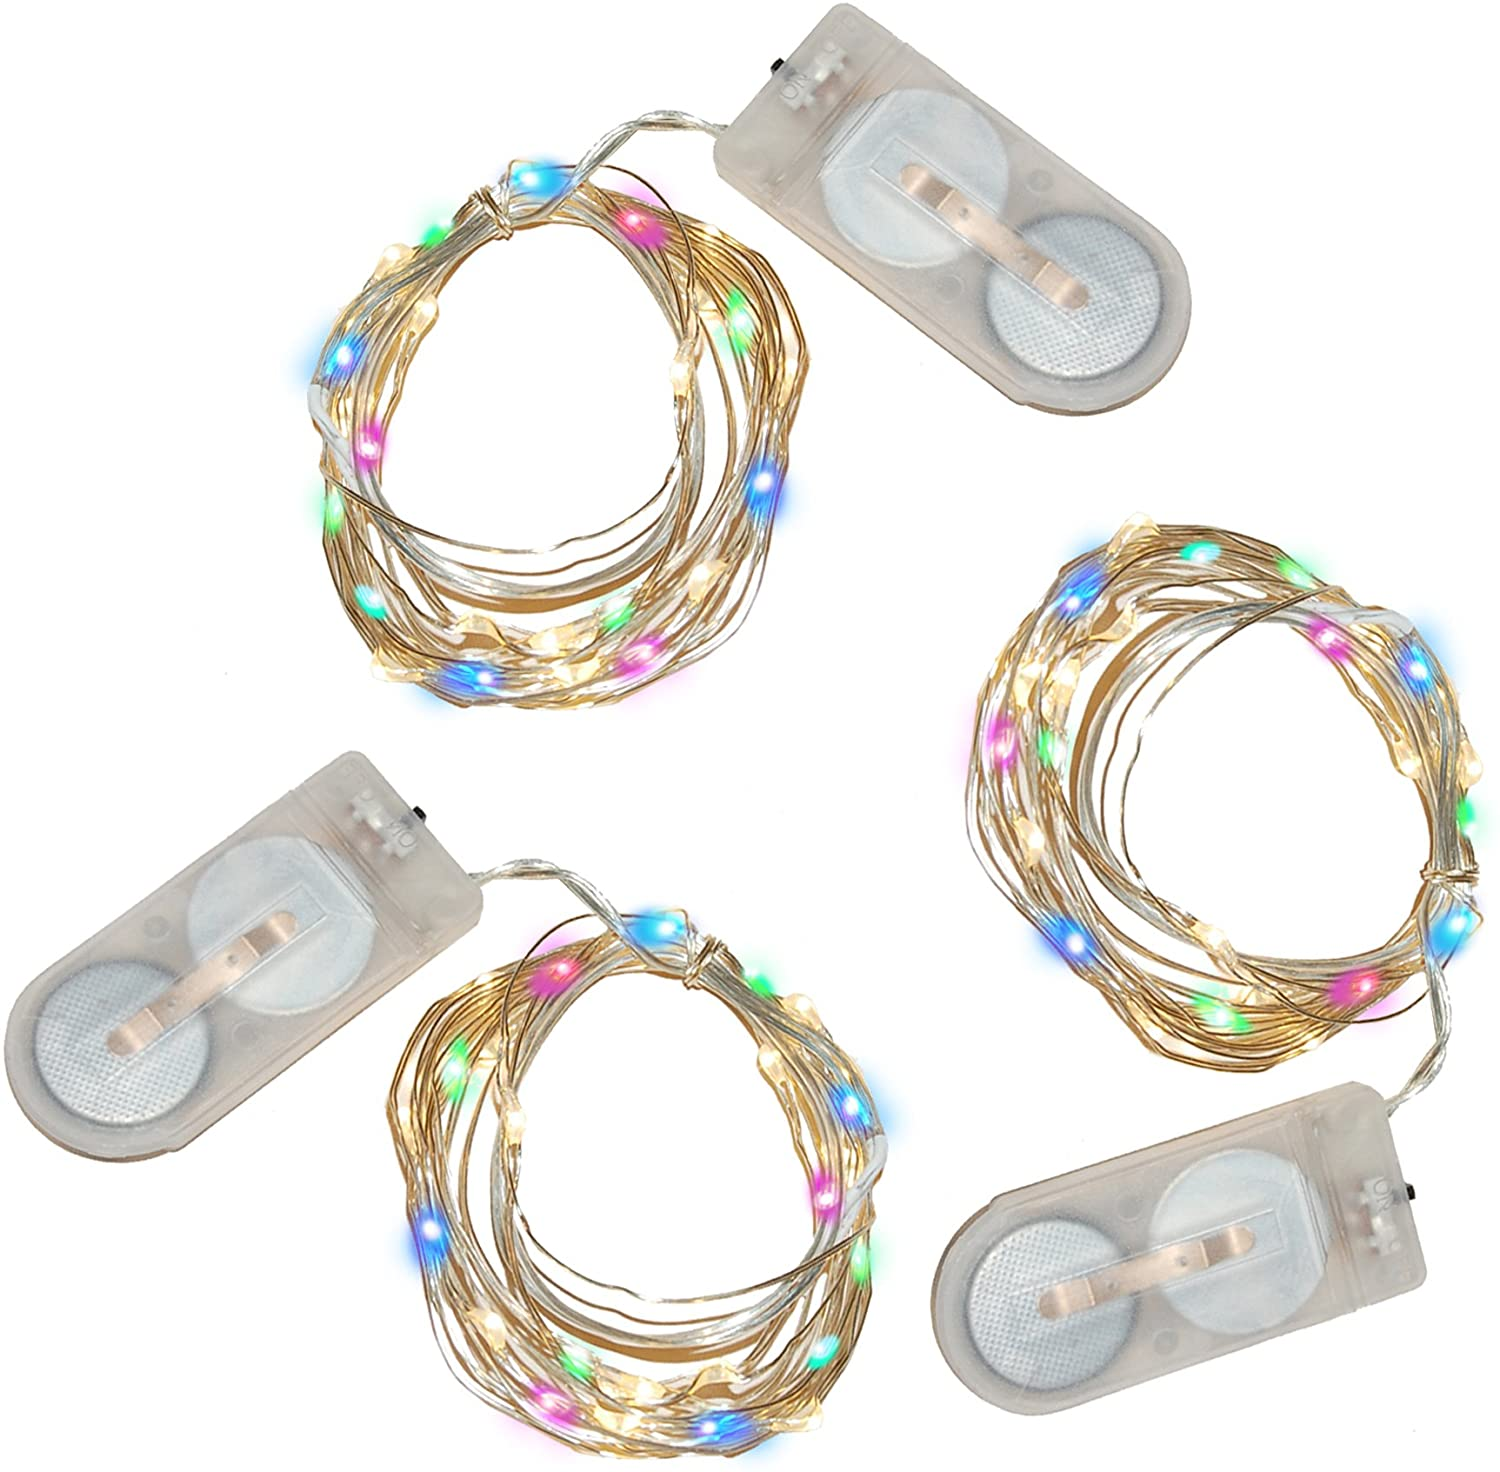 Lumabase 60603 3 Count Battery Operated Submersible Mini String Lights (60 Lights), Multicolor